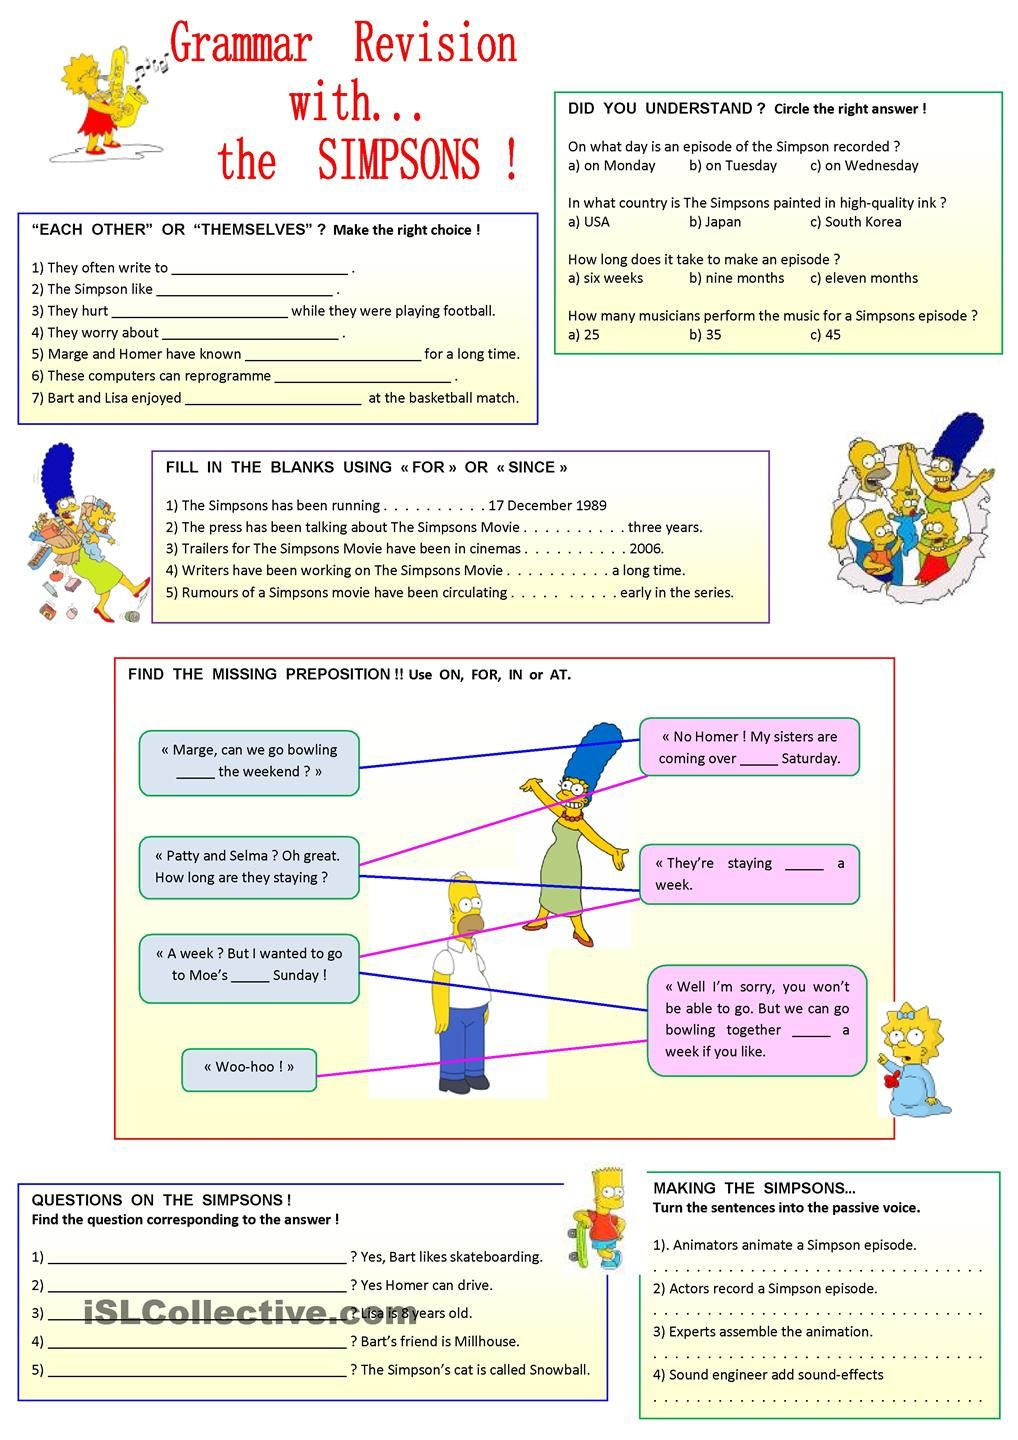 Worksheets Fun Grammar Worksheets have fun with the simpsons poon pinterest worksheets this worksheet can be divided into 2 parts reading activities grammar revision for since each other themselves place p